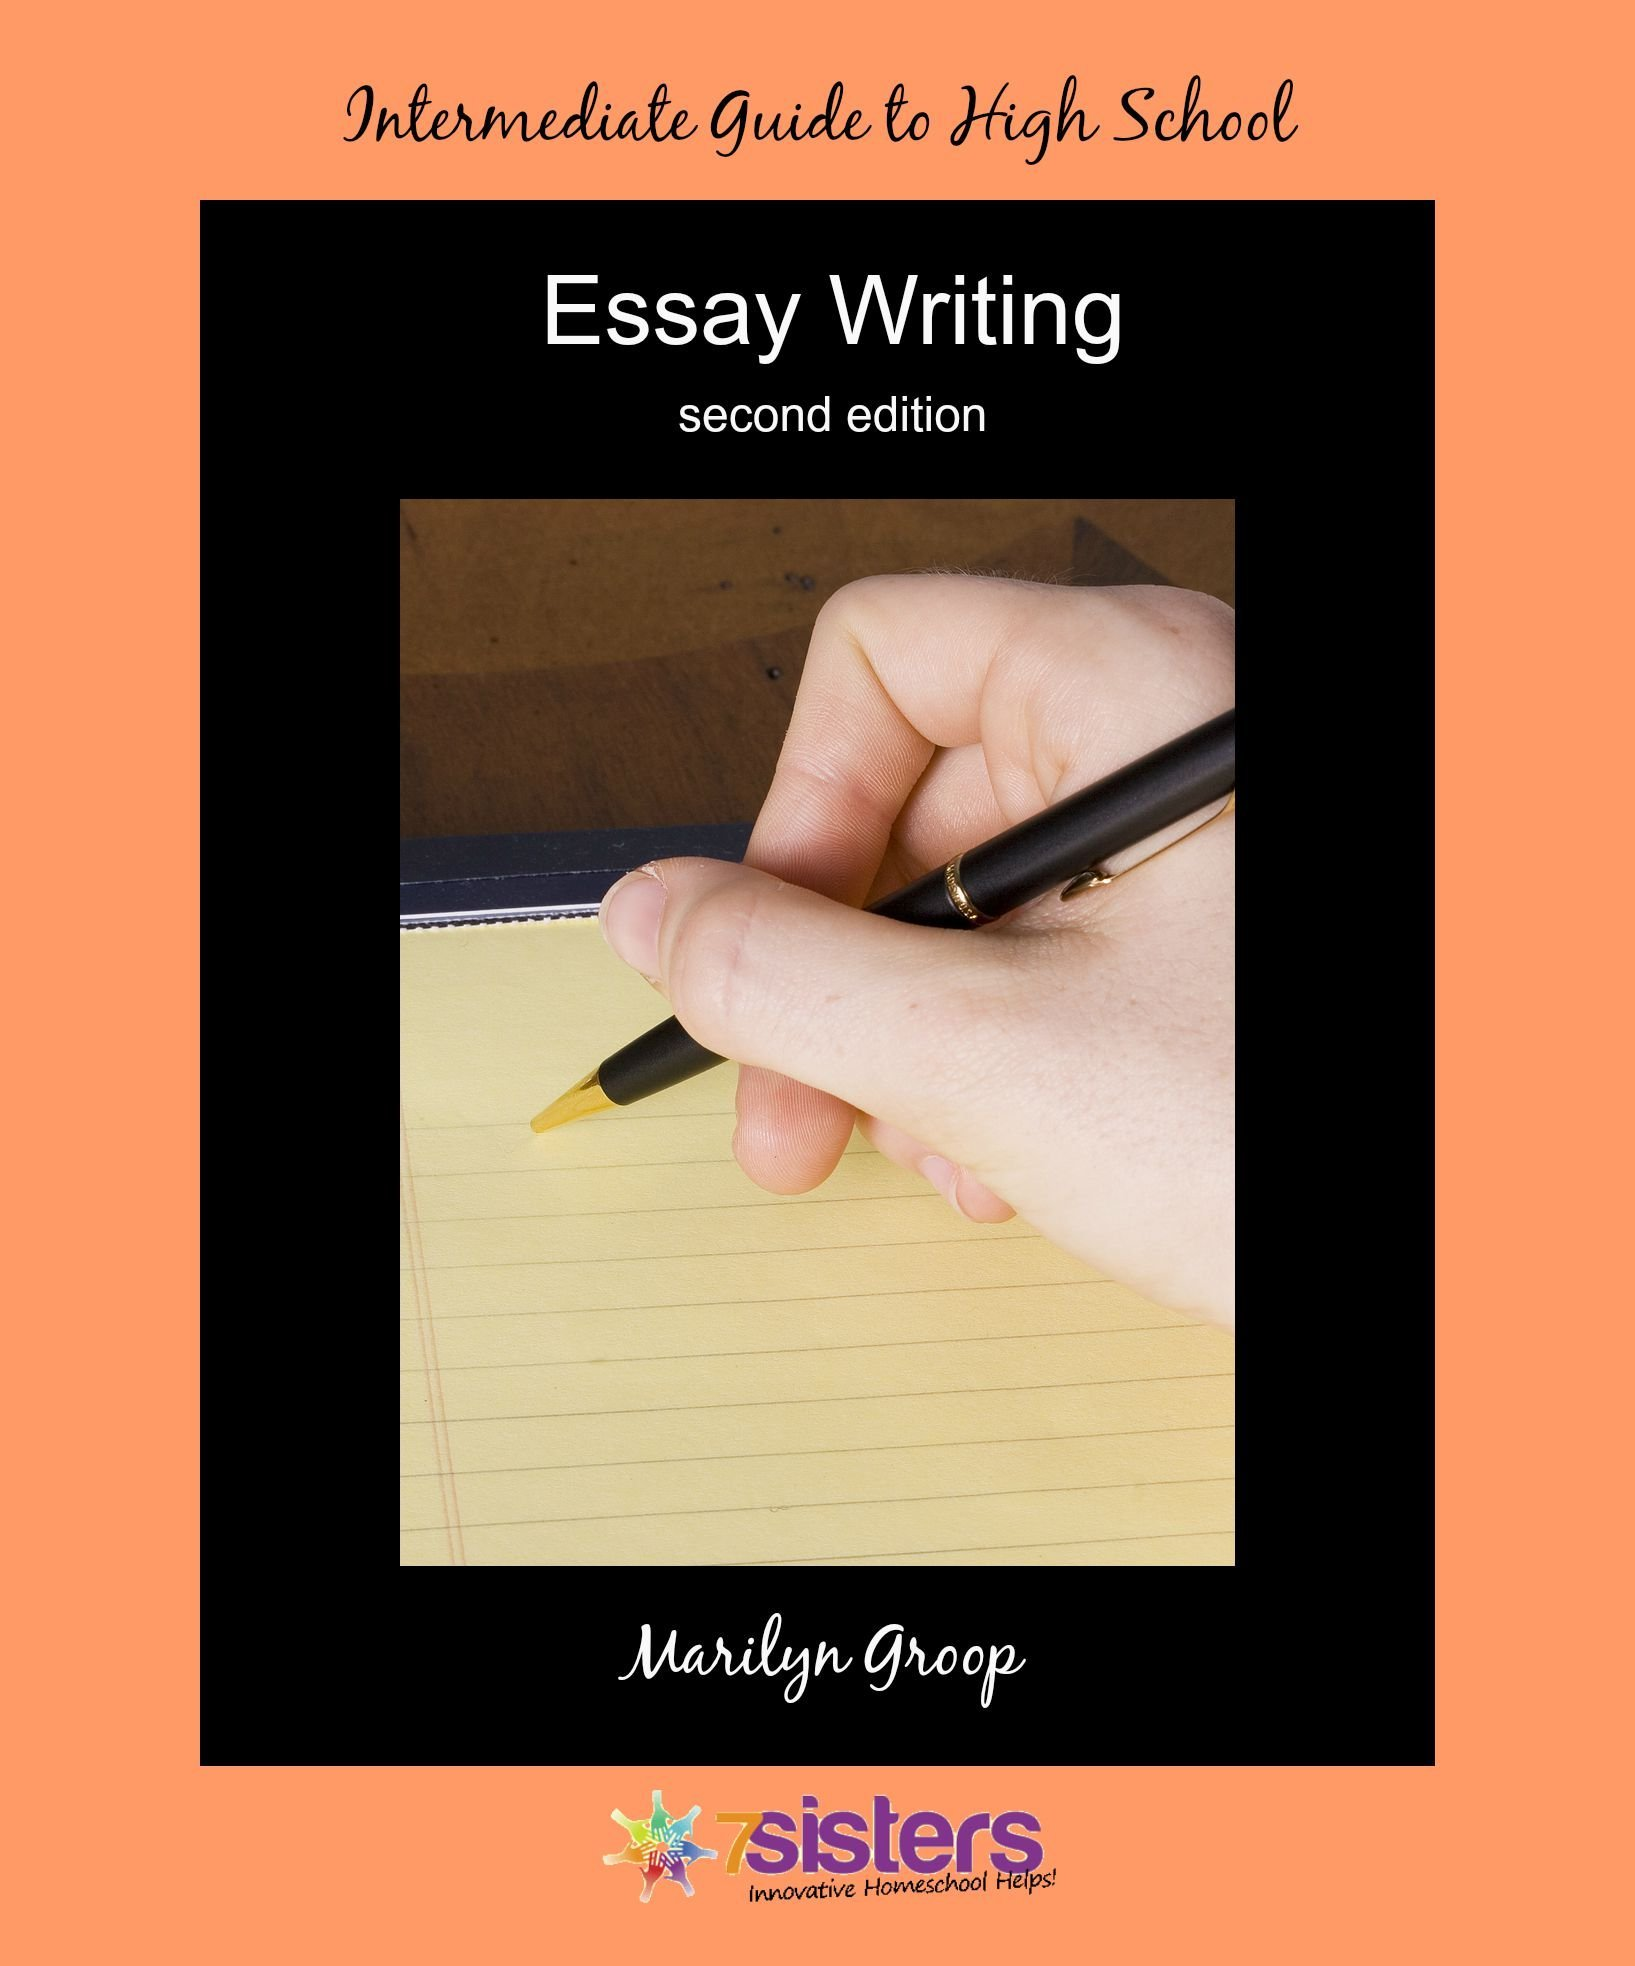 intermediate guide to high school essay writing second edition  intermediate guide to high school essay writing second edition